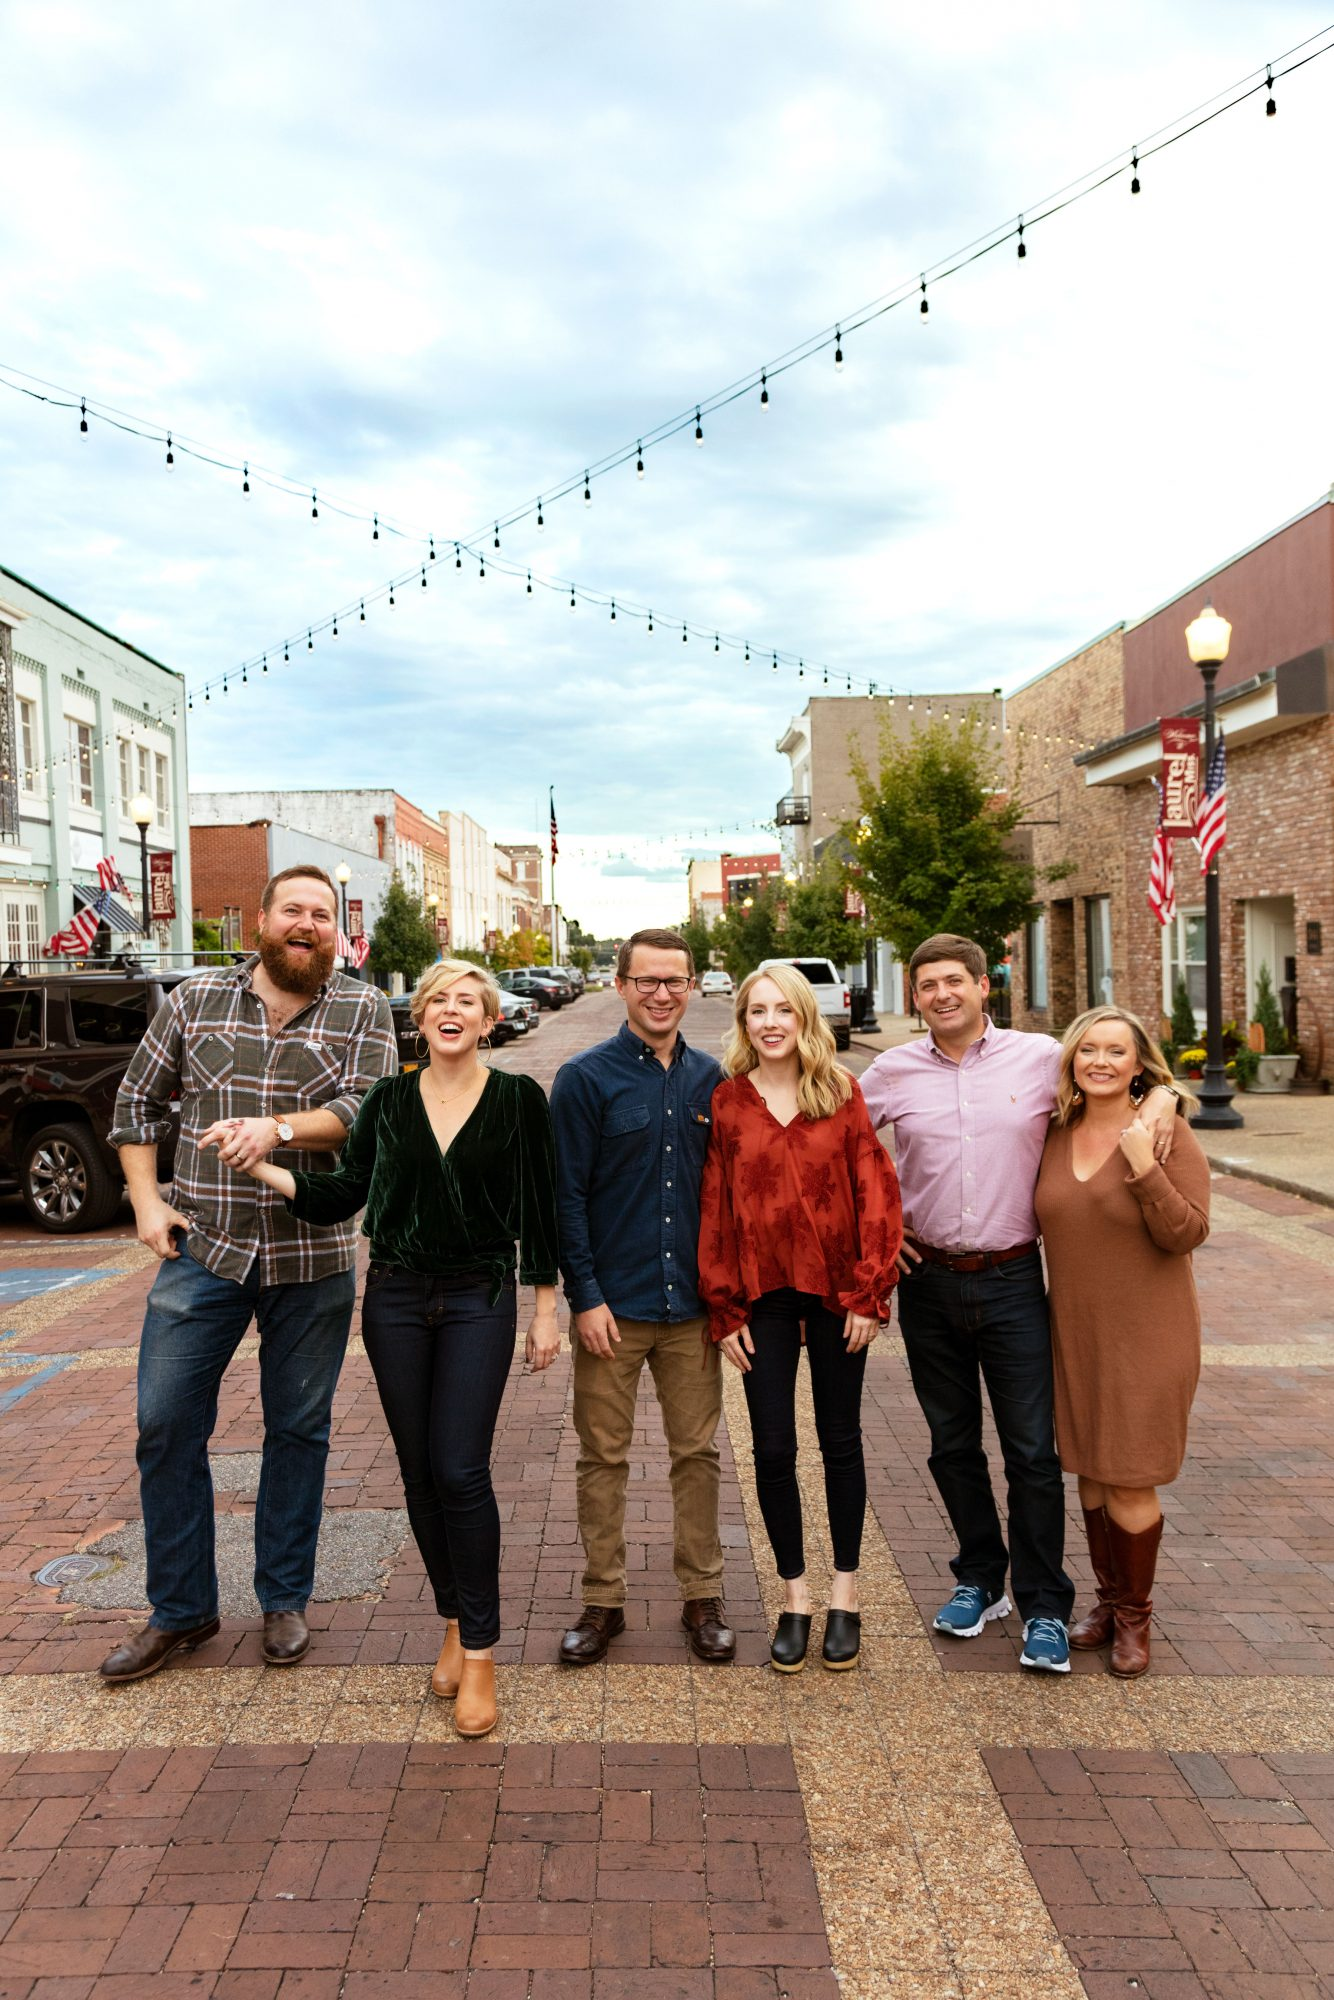 The Laurel Mercantile Co. team, from left: Ben & Erin Napier, Josh & Emily Nowell, Jim & Mallorie Rasberry